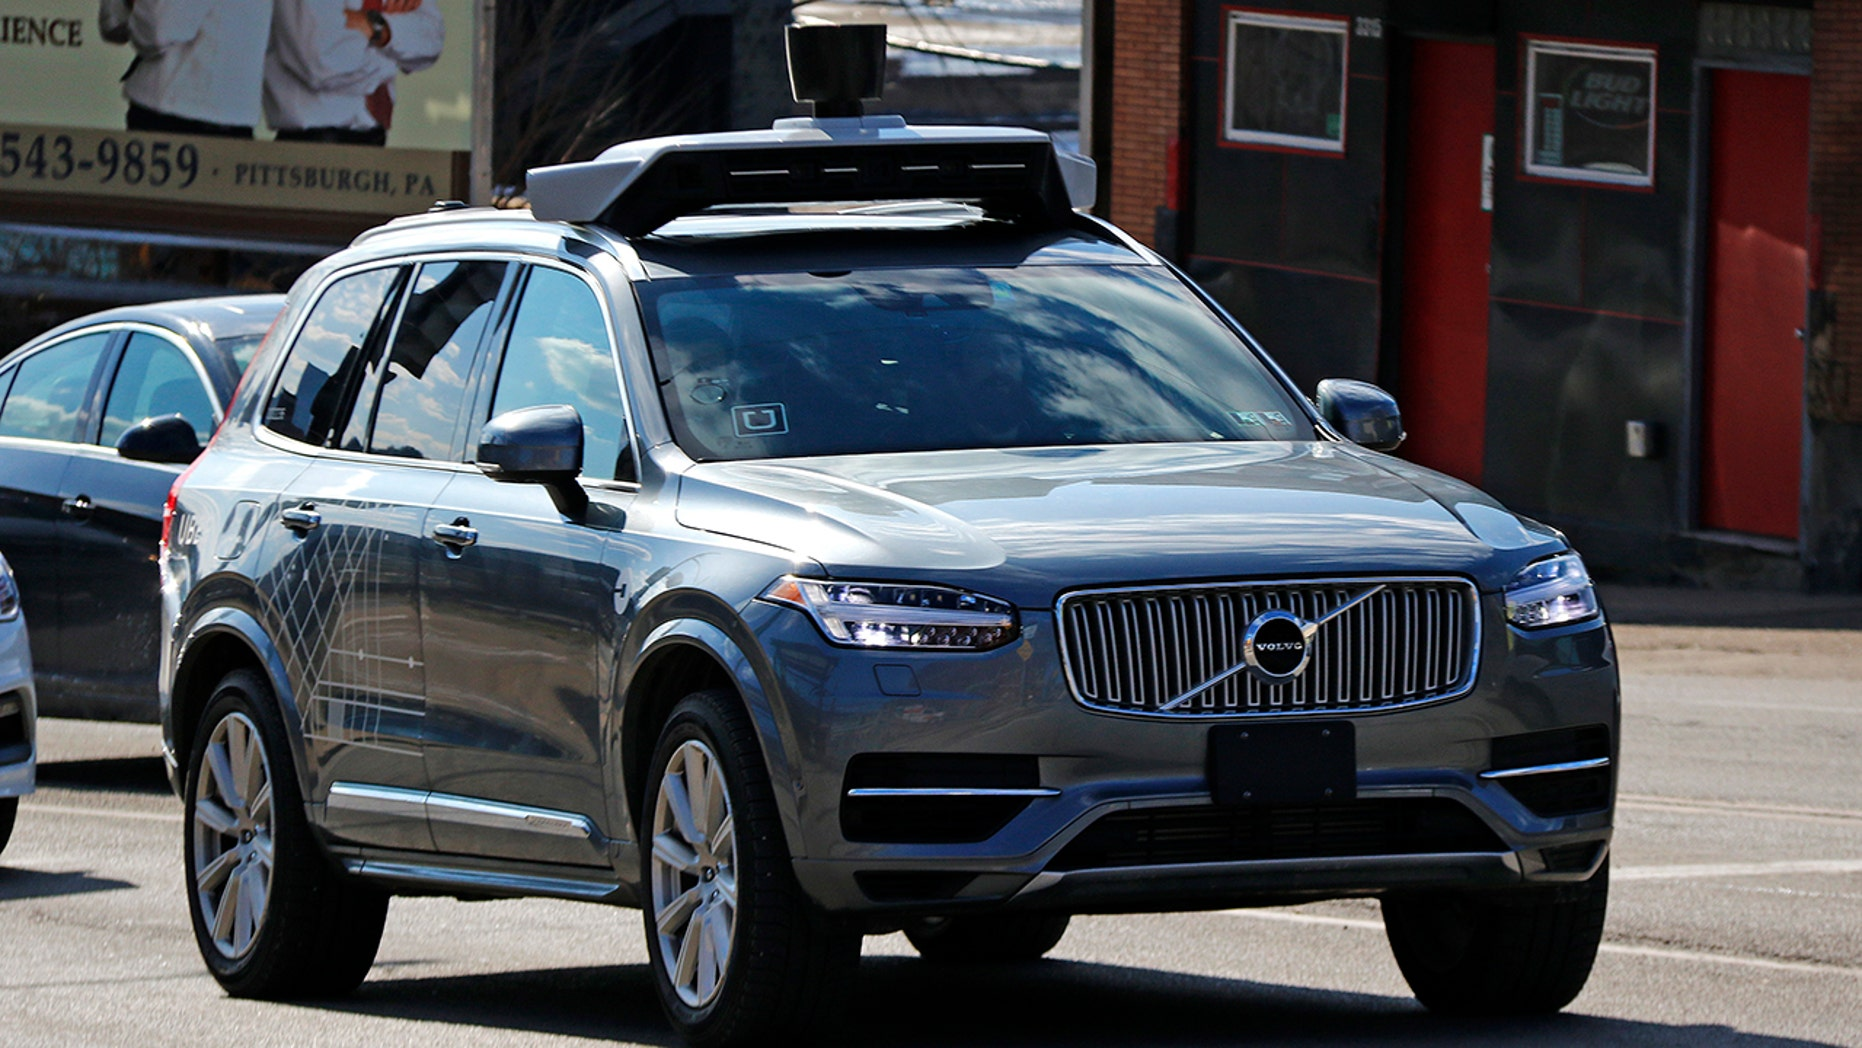 Uber resumes self-driving vehicle testing 9 months after fatal crash